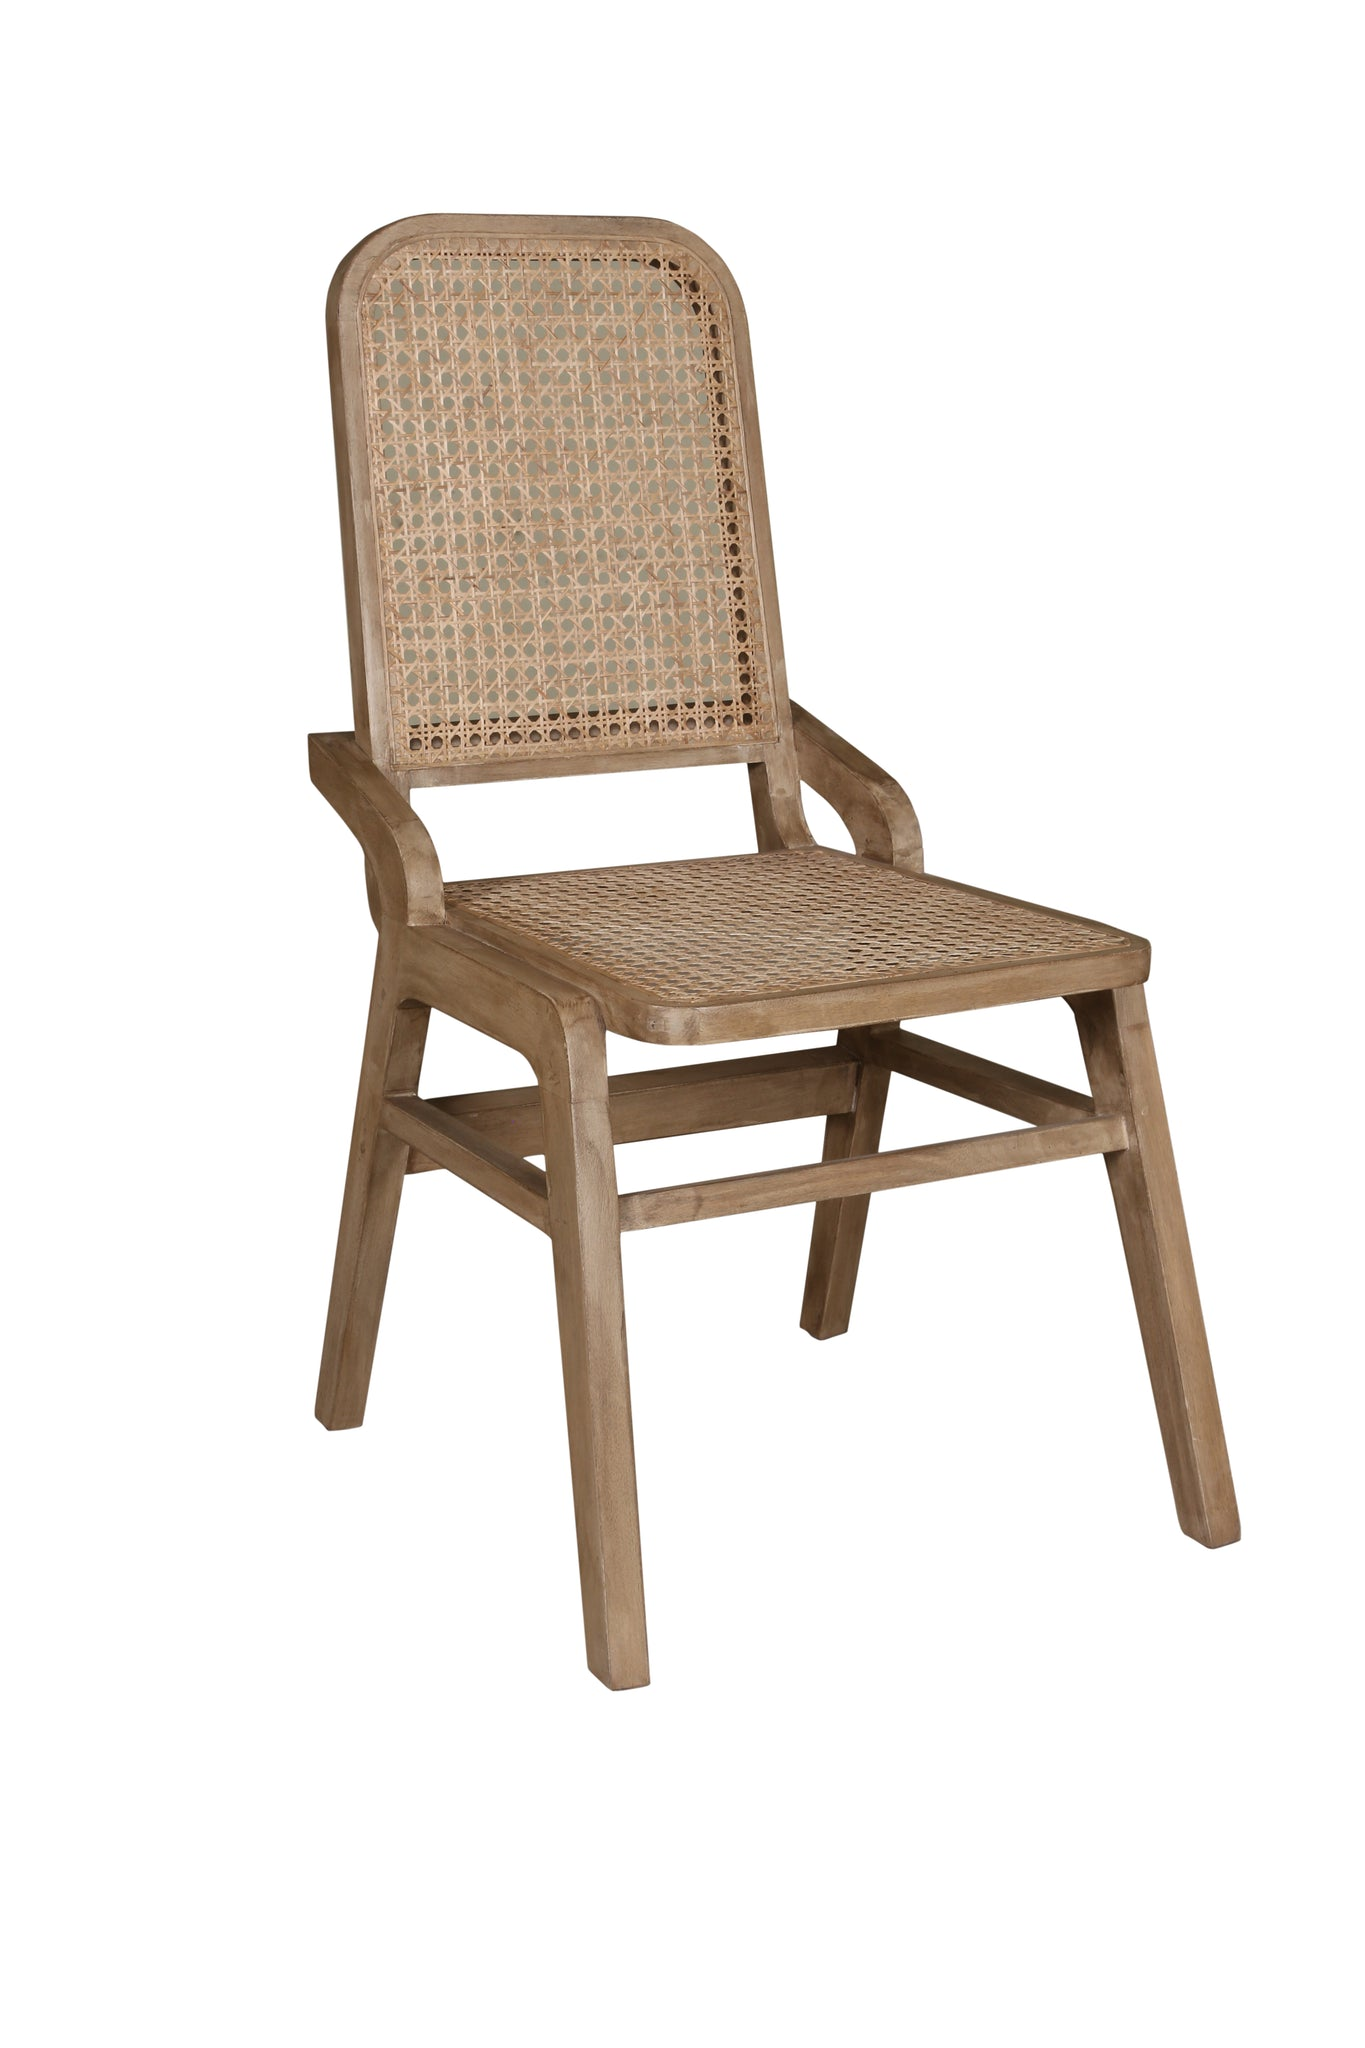 Wicker Cane Dining Chair